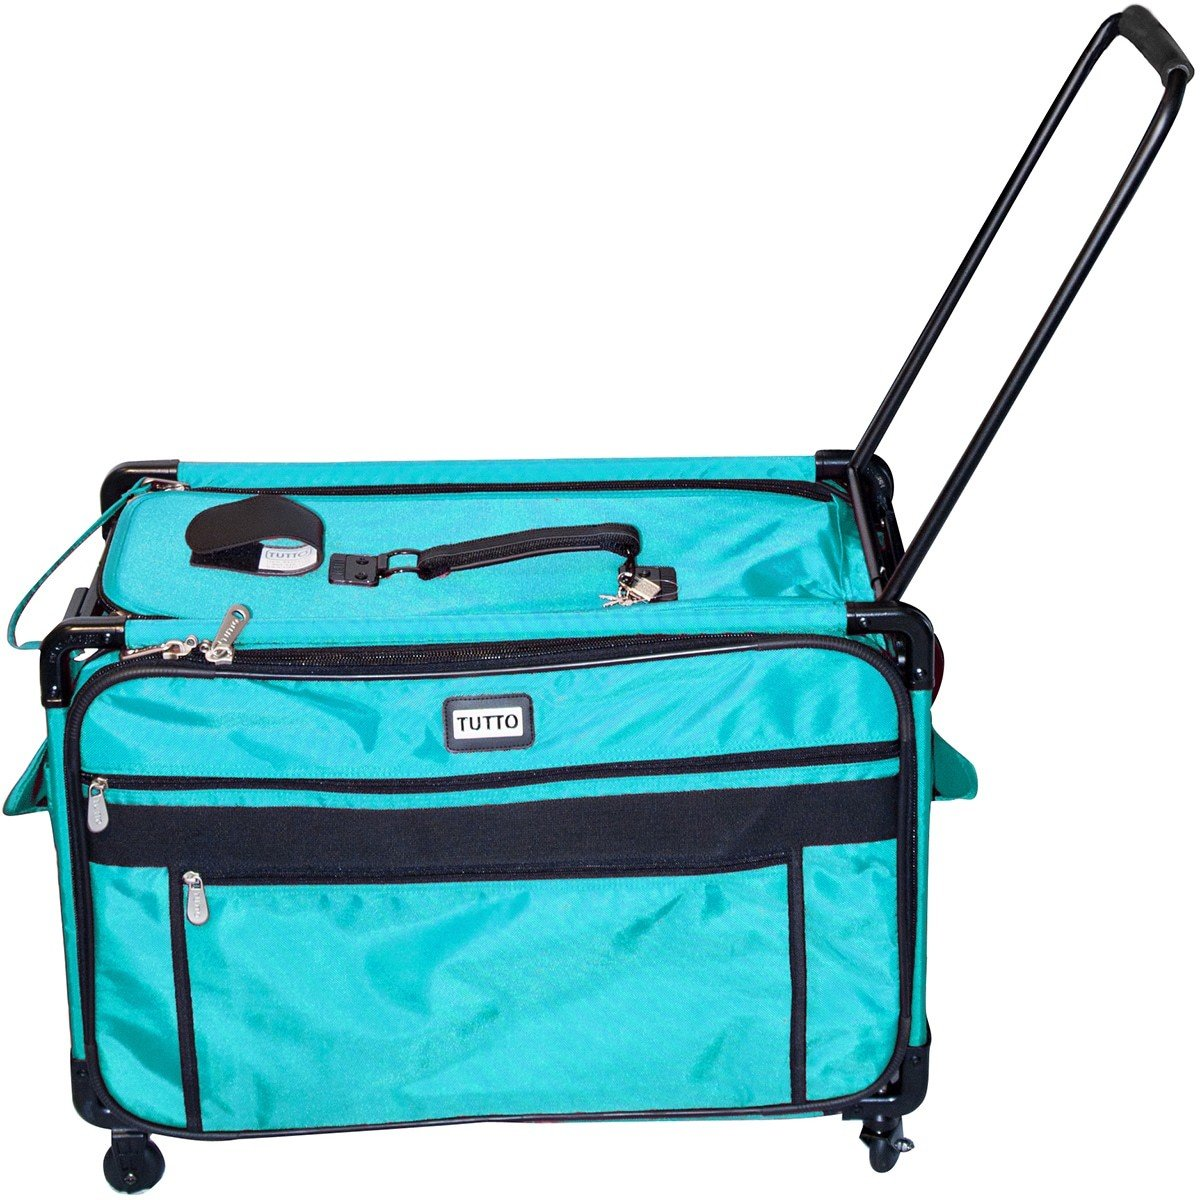 Tutto Large Turquoise